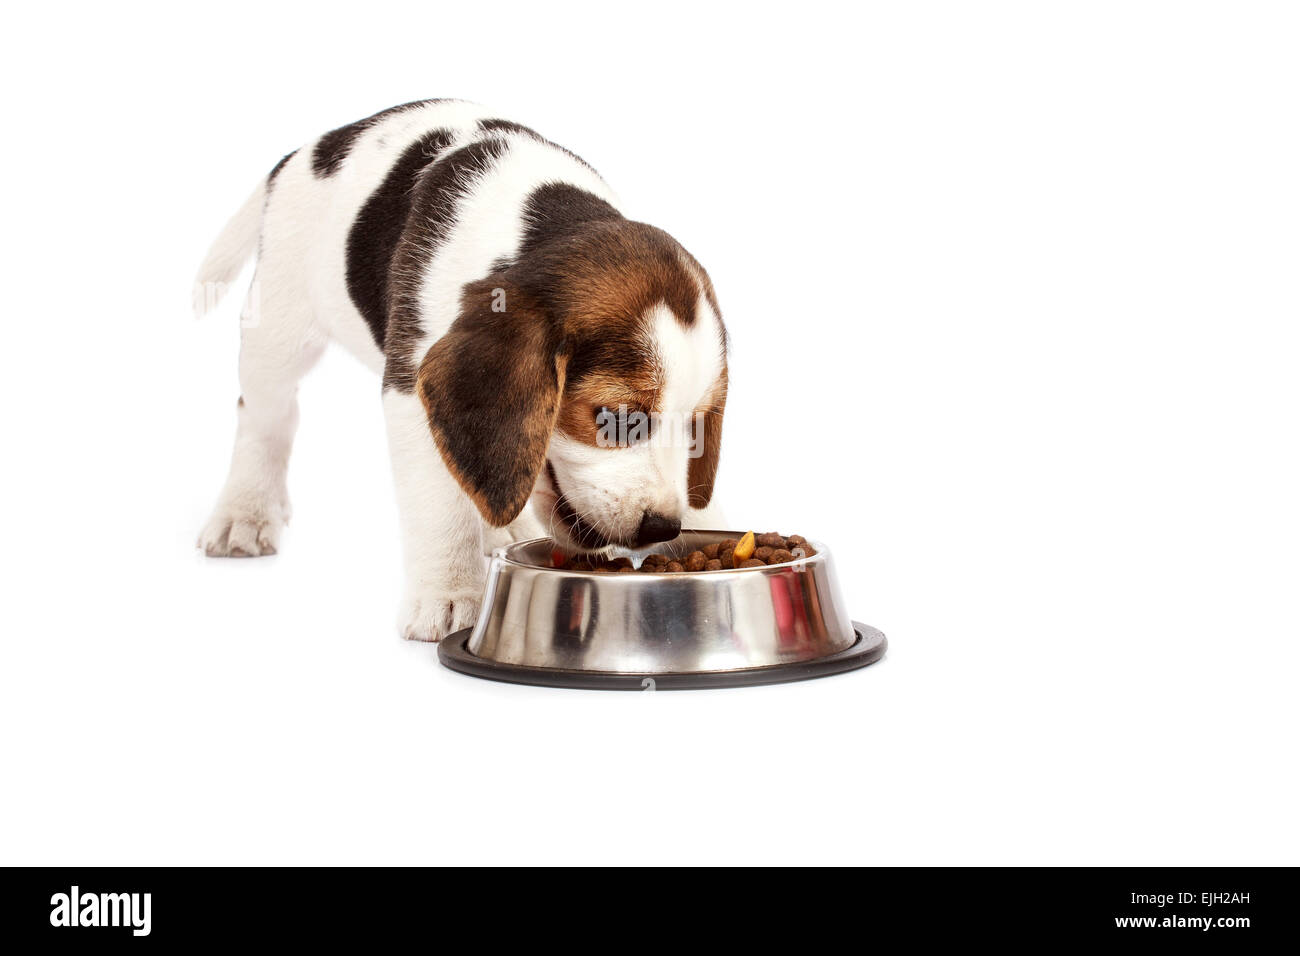 Beagle Puppy Dog That Eating On A White Background Stock Photo Alamy